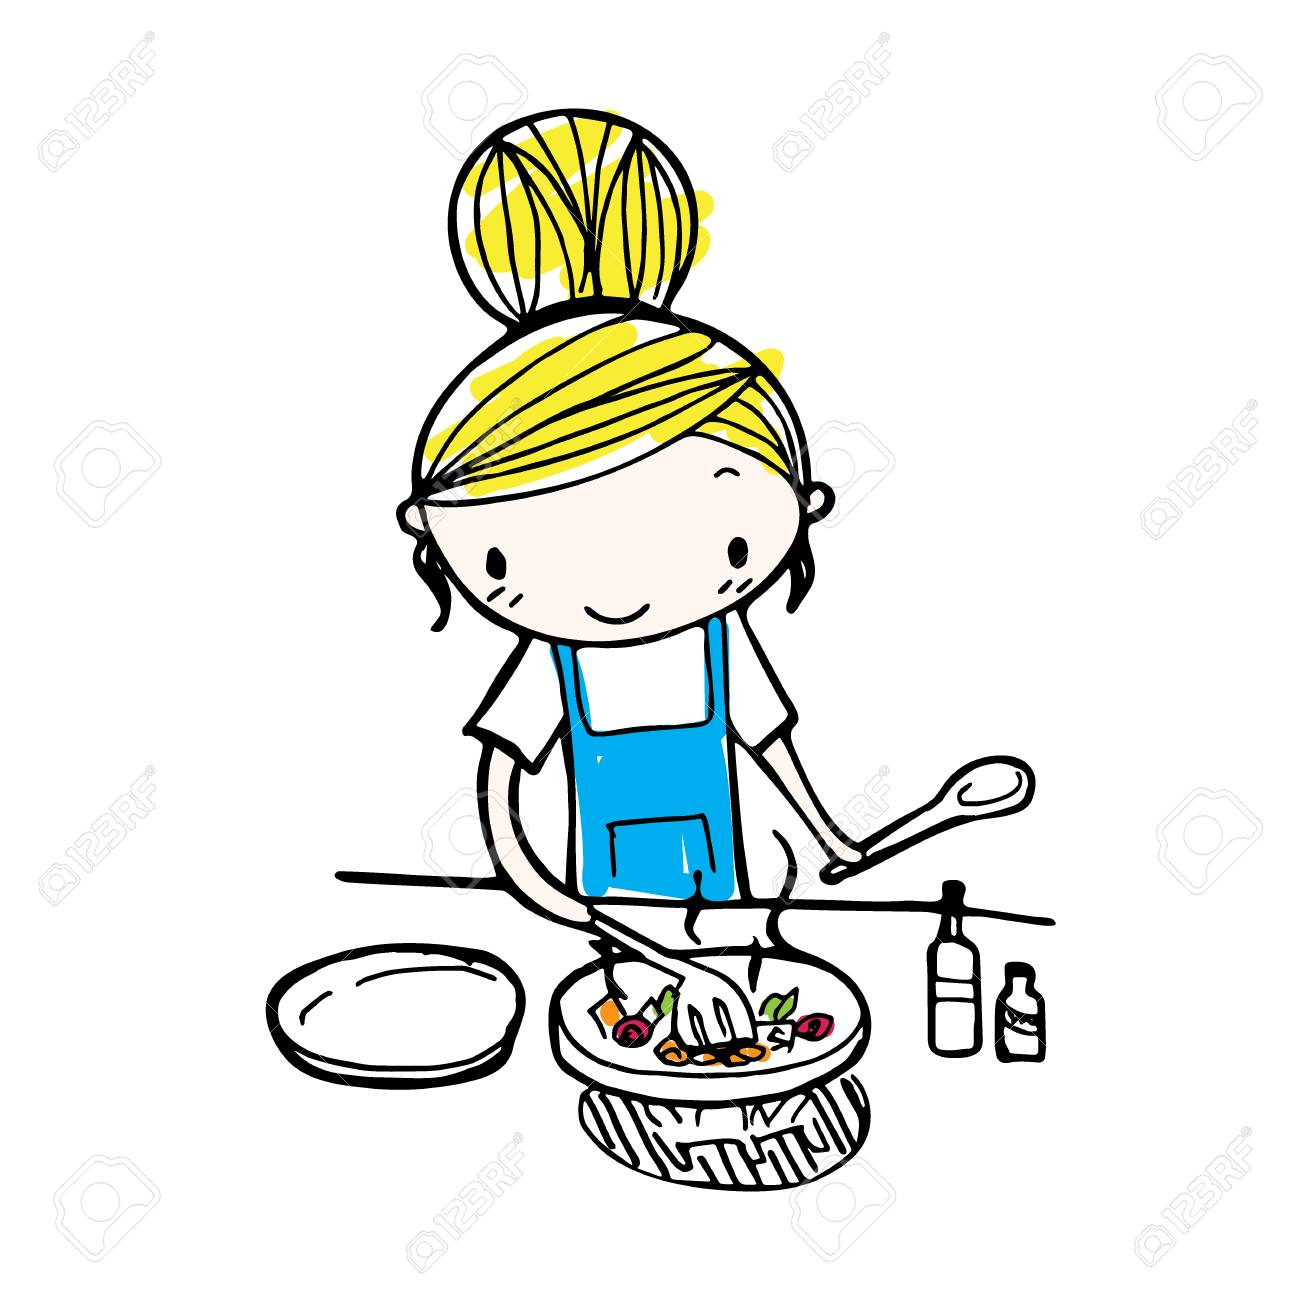 Doodle Line Vector Of Cute Cartoon Girl Cooking In Kitchen Royalty Free Cliparts Vectors And Stock Illustration Image 69099927